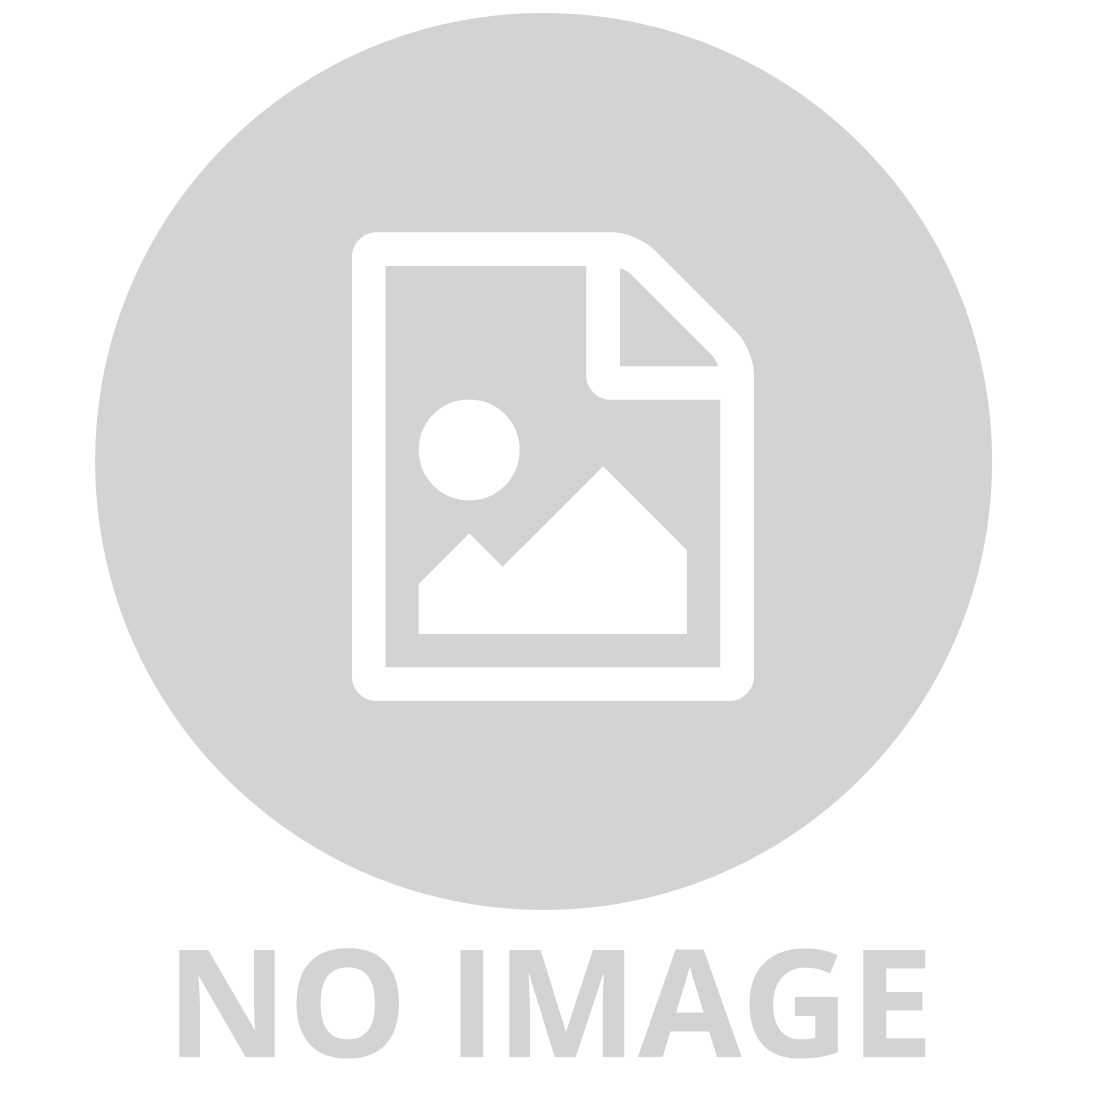 Airbus M&M 250 LED SQR white Face Plate